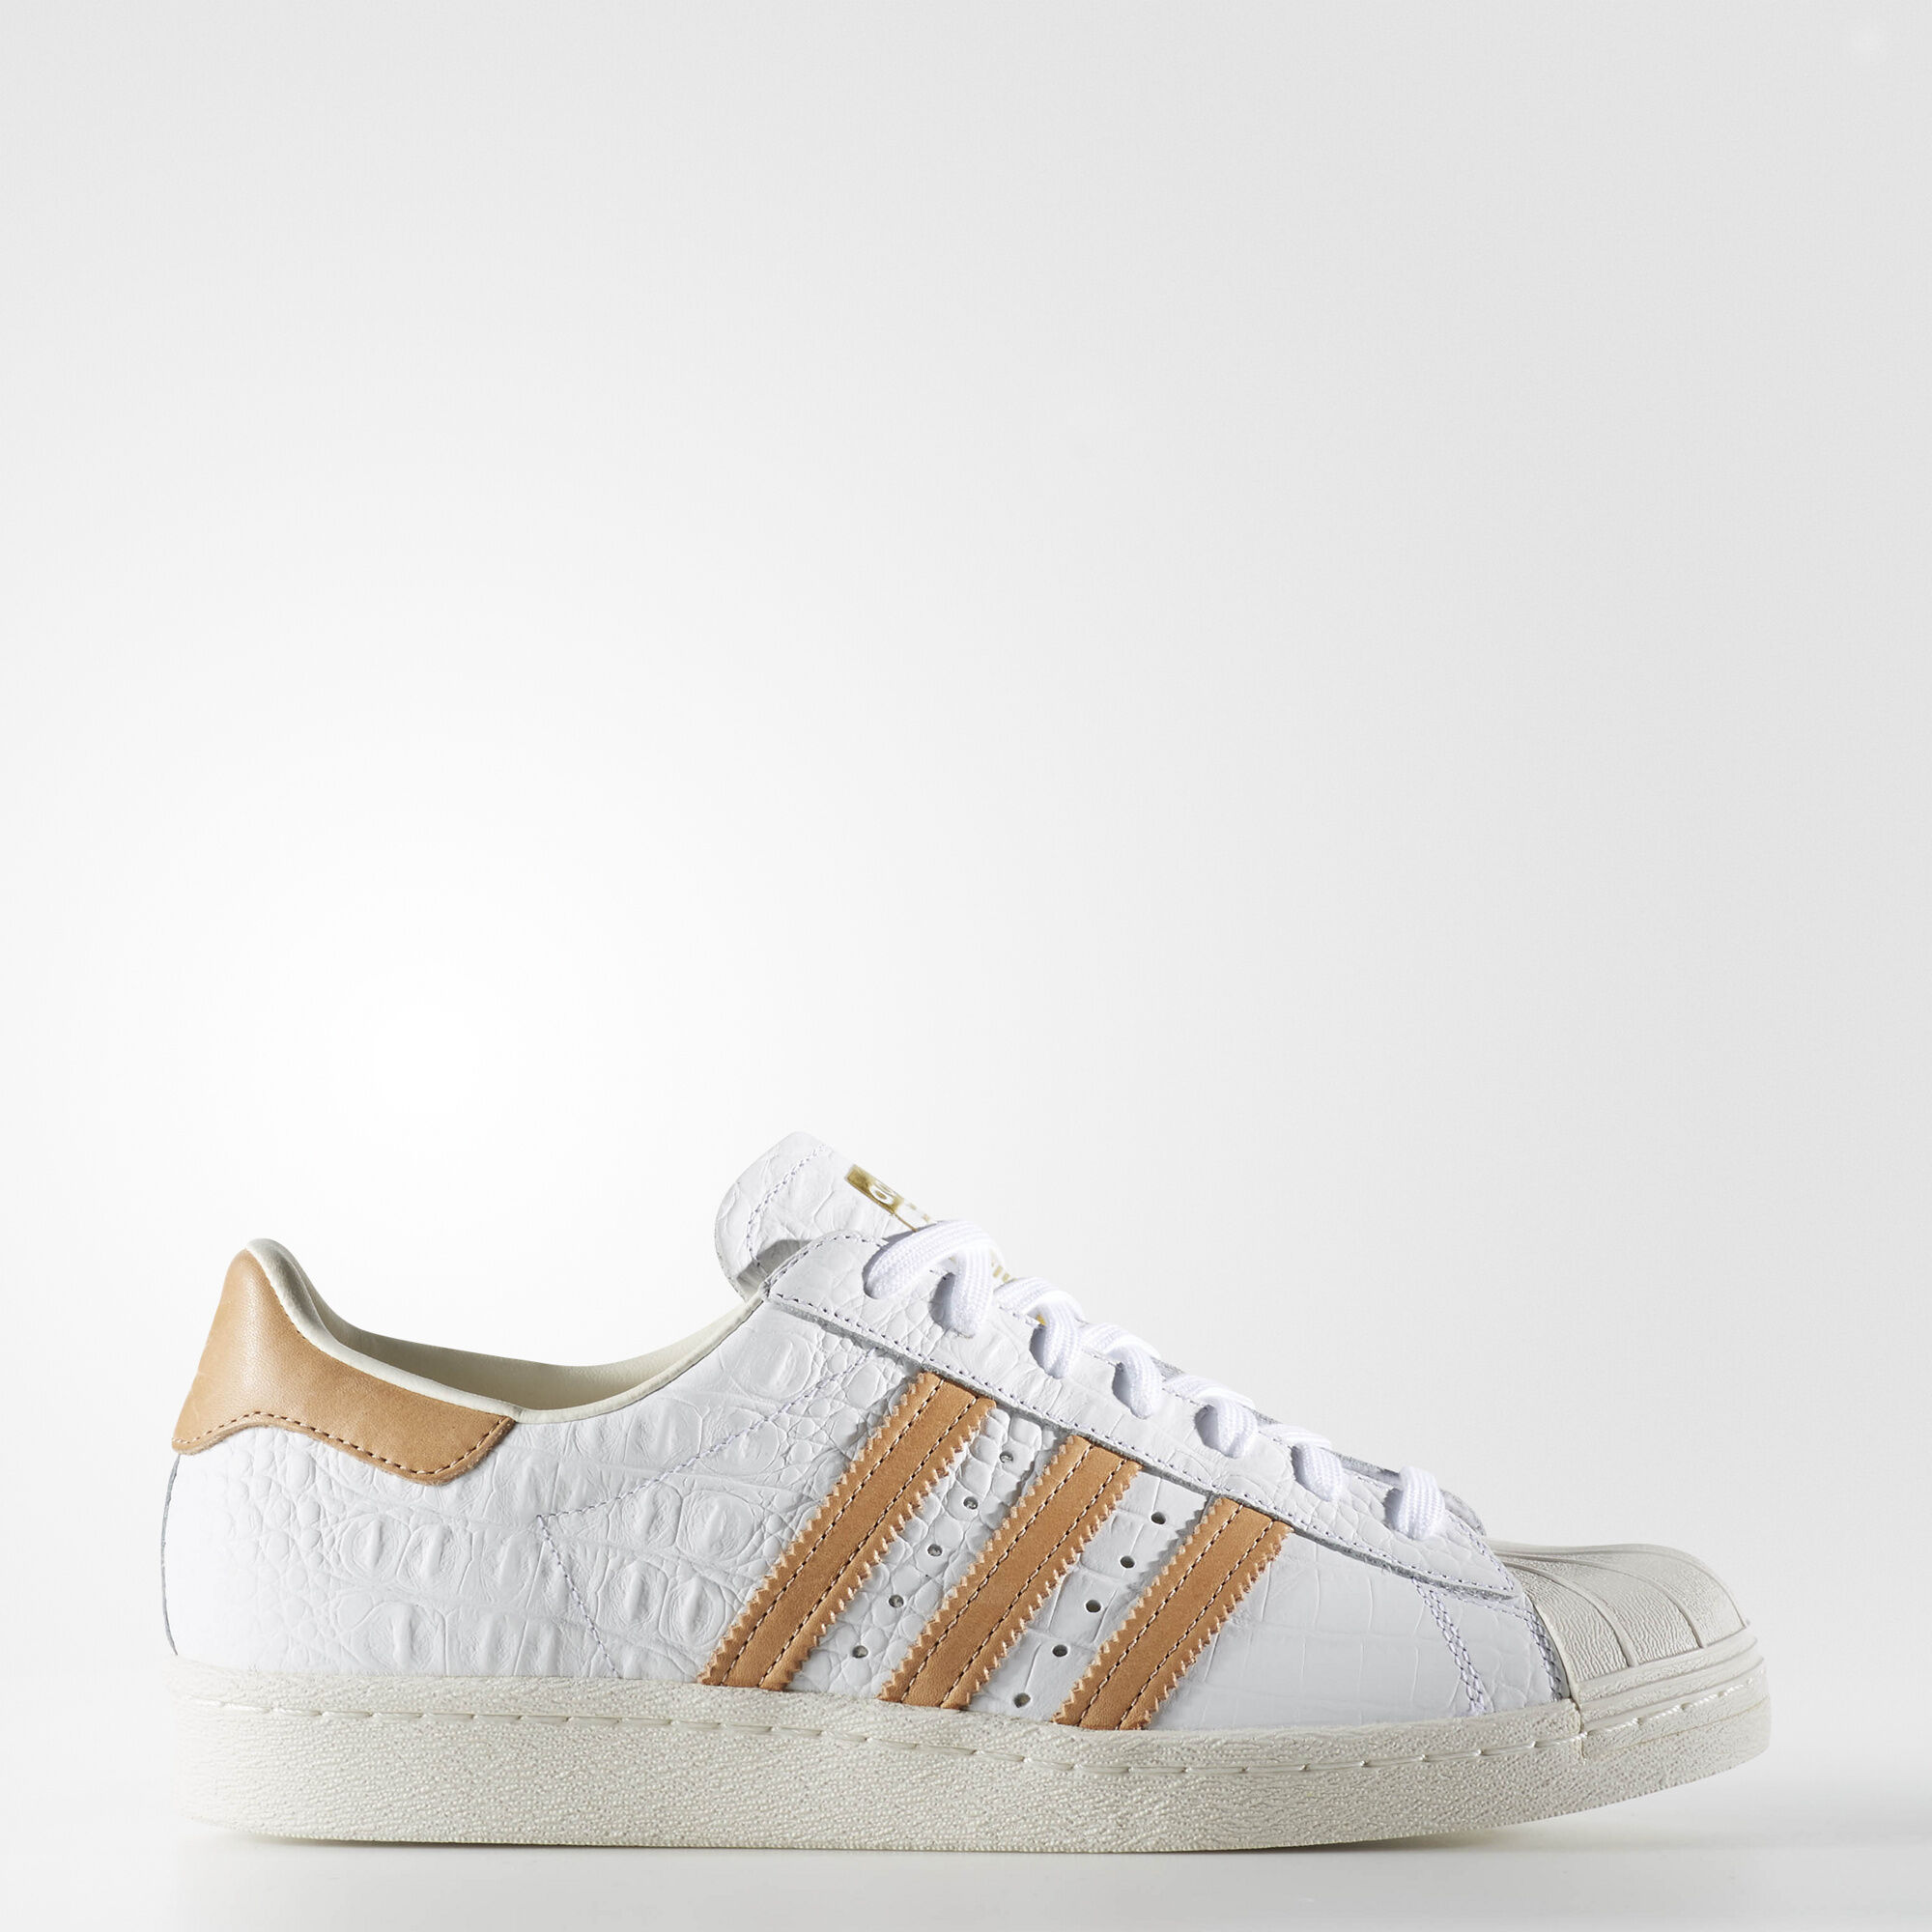 finest selection dd7d5 bce7e Adidas Superstar 80s Rose Gold Metallic White Leather ...